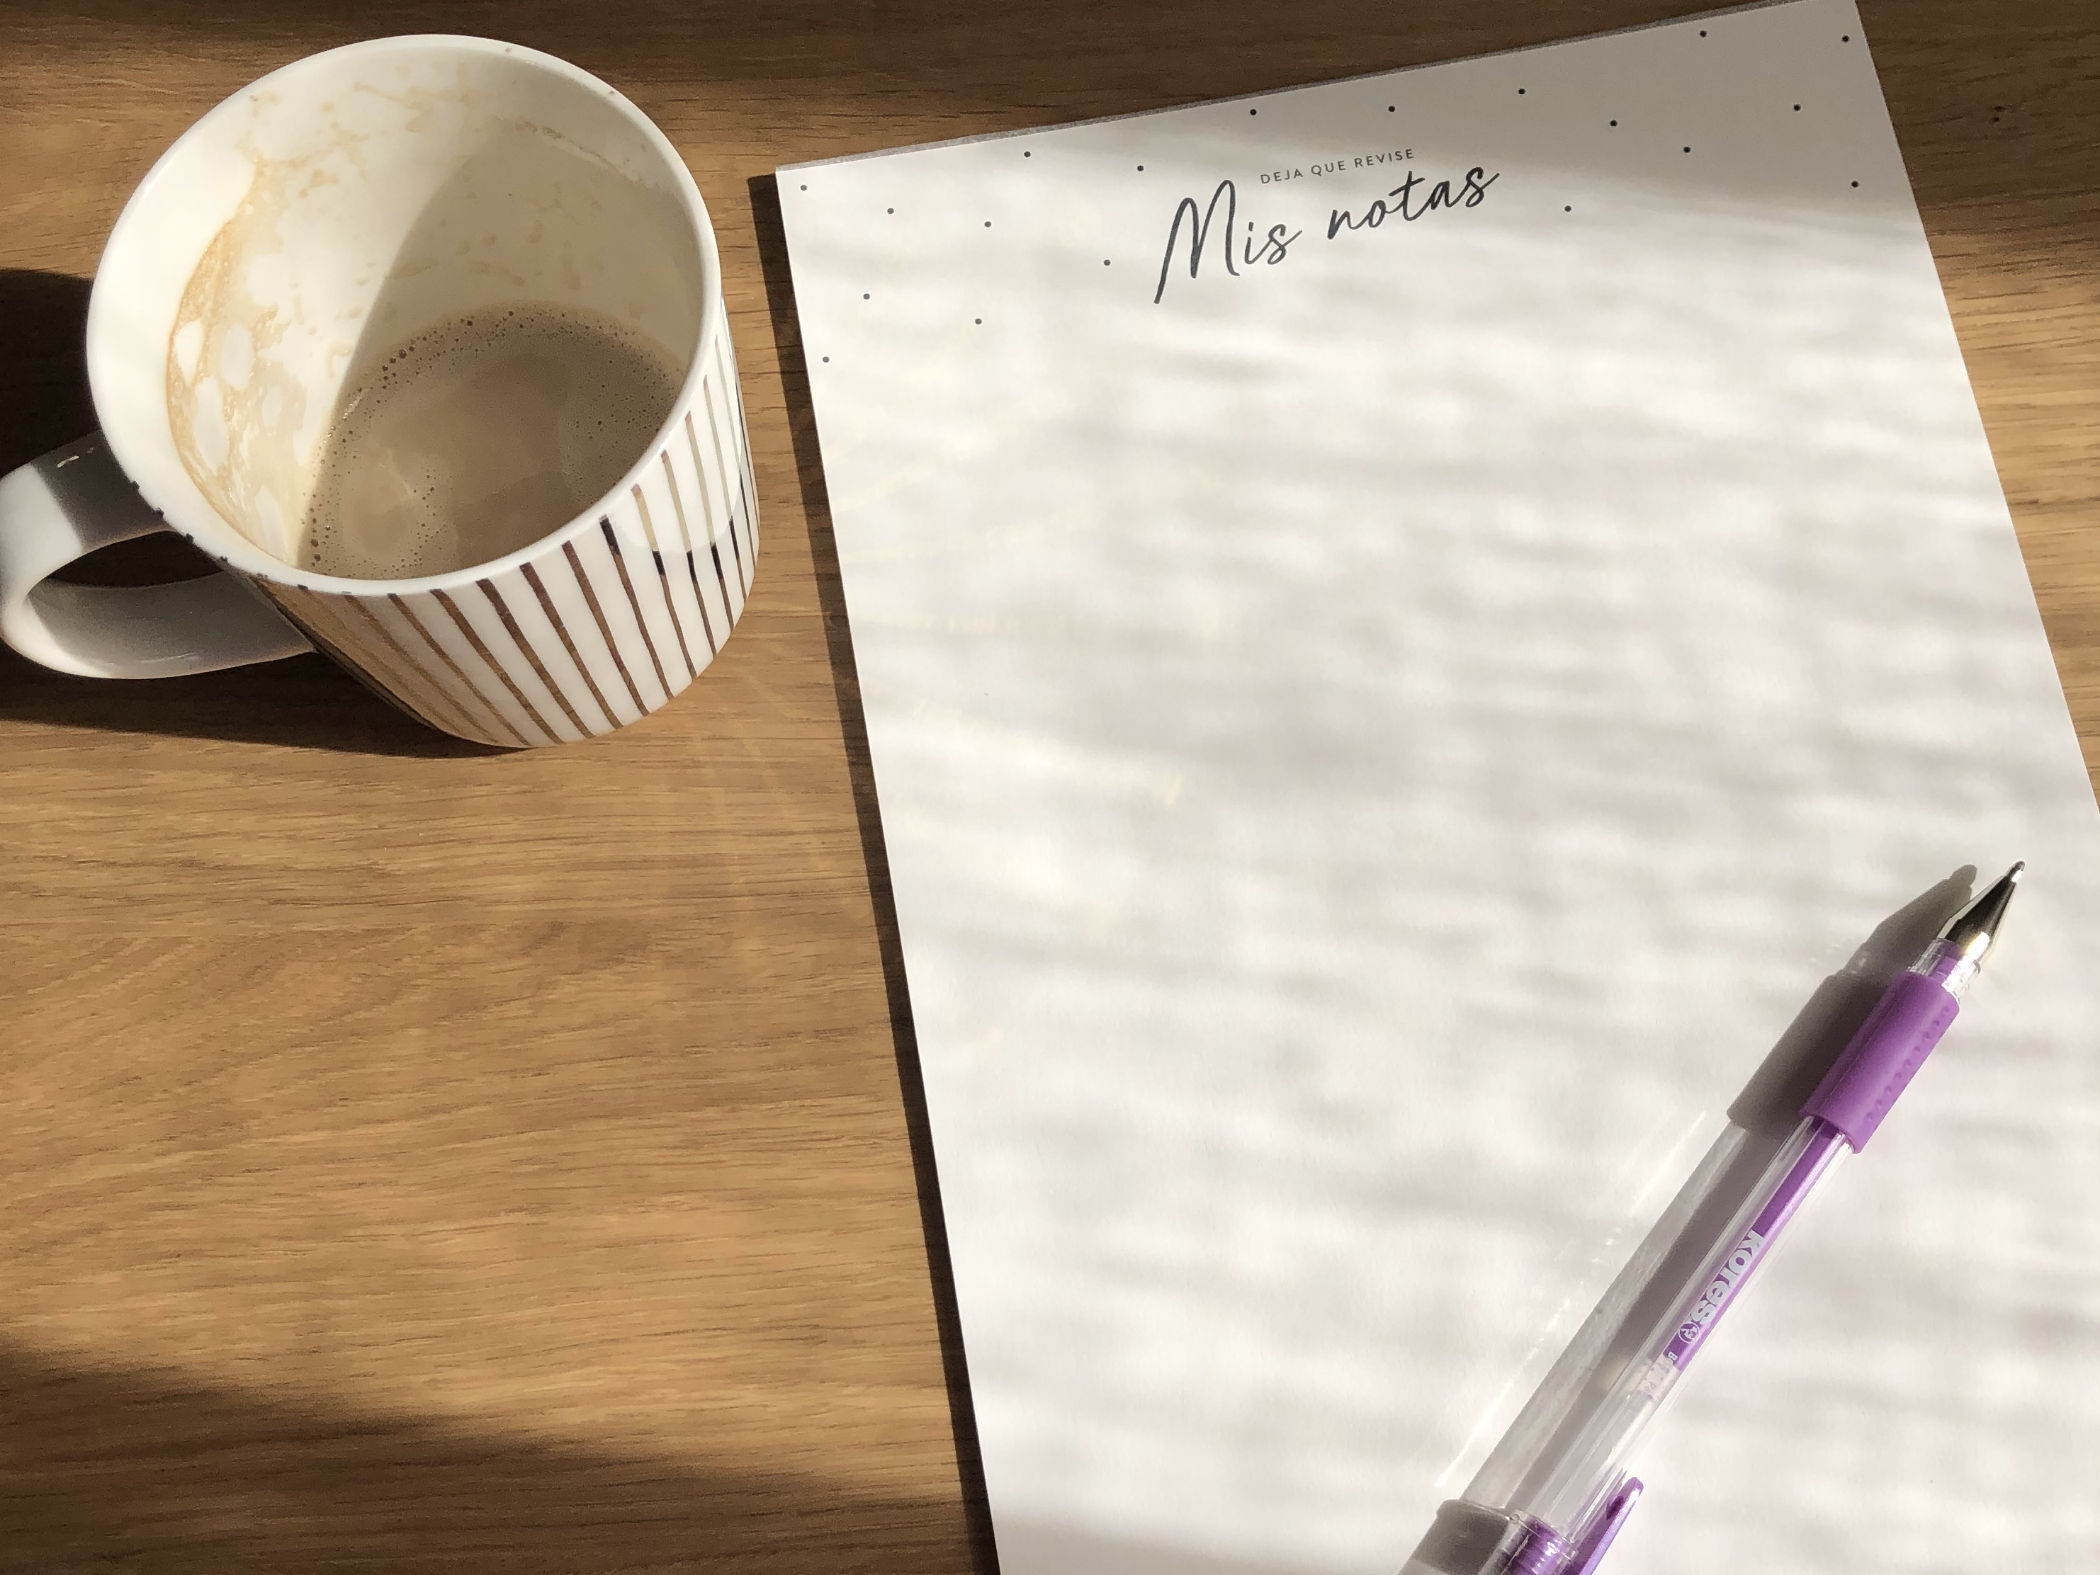 An almost empty cup of coffee next a Charuca notepack and purple pen